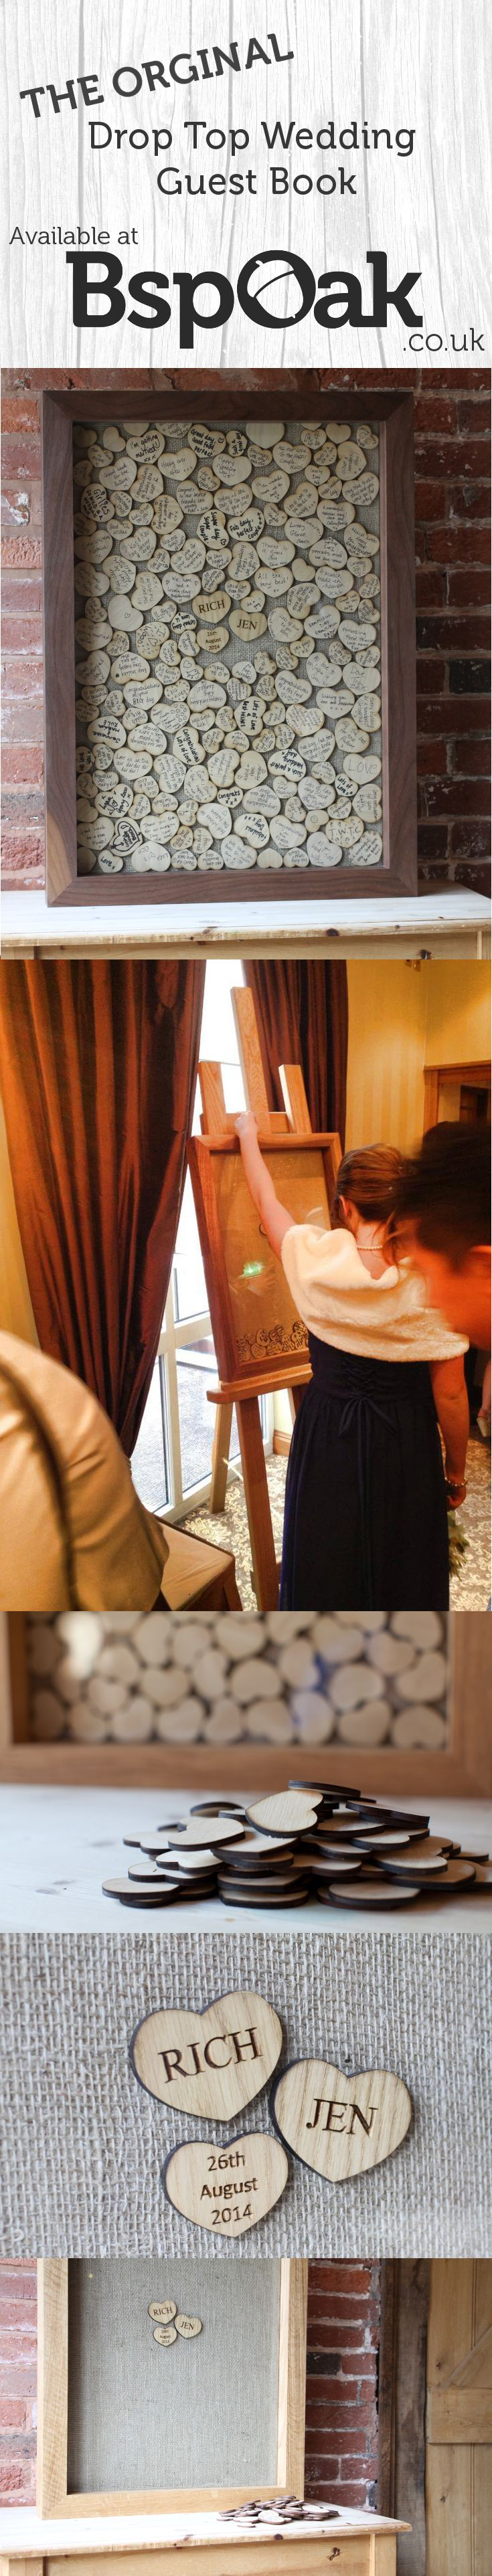 Inspired by the old fairground two penny slot machine, the Drop Top Guest Book is our modern twist on the traditional guestbook, a must have at any wedding celebration. Displayed in the reception venue, each guest is invited to write their special message onto a wooden heart and then post it into the guest book through a slot at the top. Once posted each heart falls down and creates a one of a kind, work of art to be displayed in your home after your special day. £270 #Wedding #Guestbook